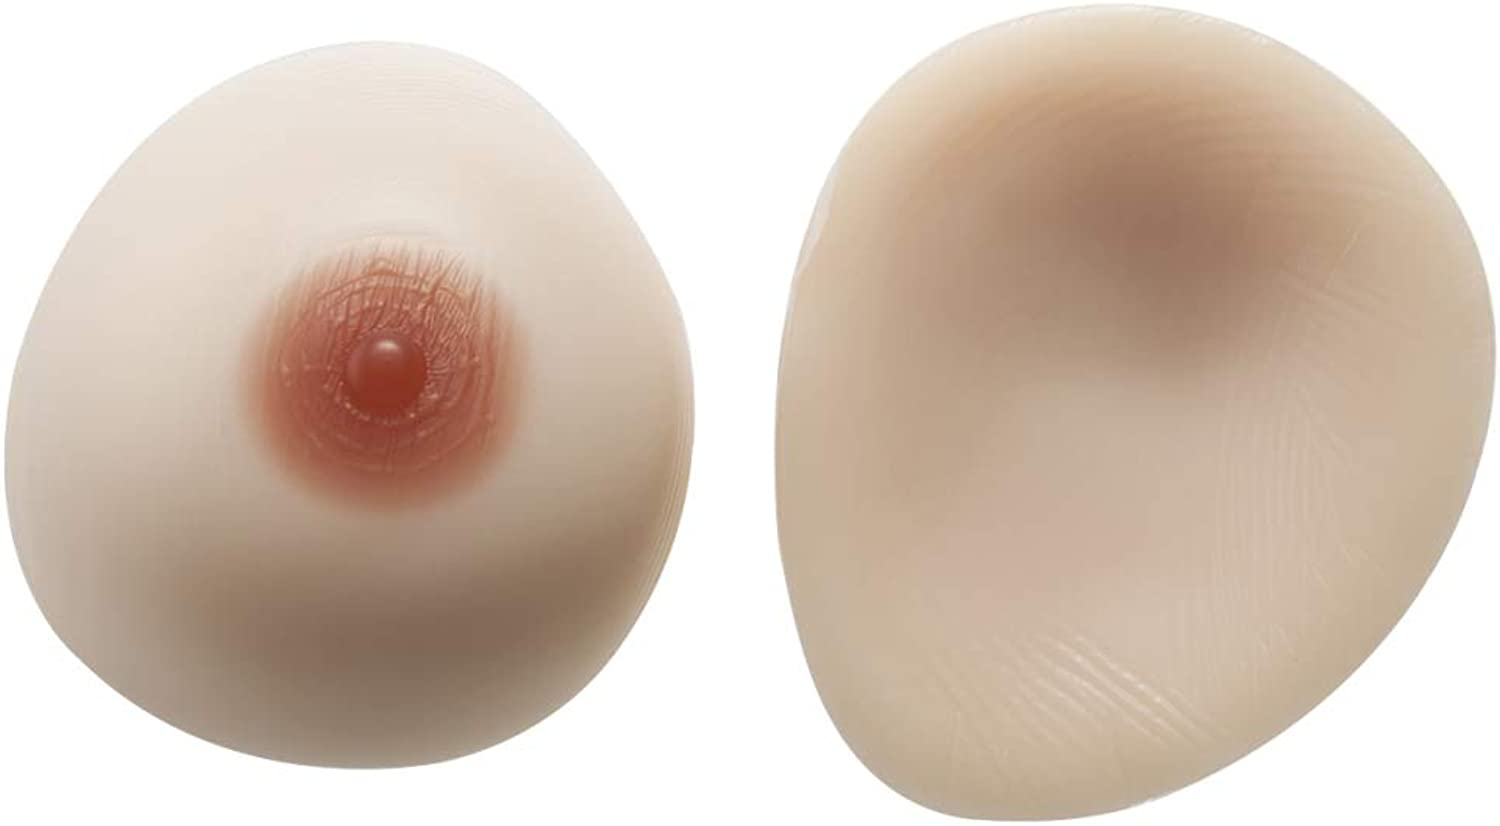 False Breast Safe Material Breast Silicone Breast Artificial Boobs Silicone Chest 1 Pair Dropshaped Breasts,SkincolorSelfStickingL1.8Lb Pair